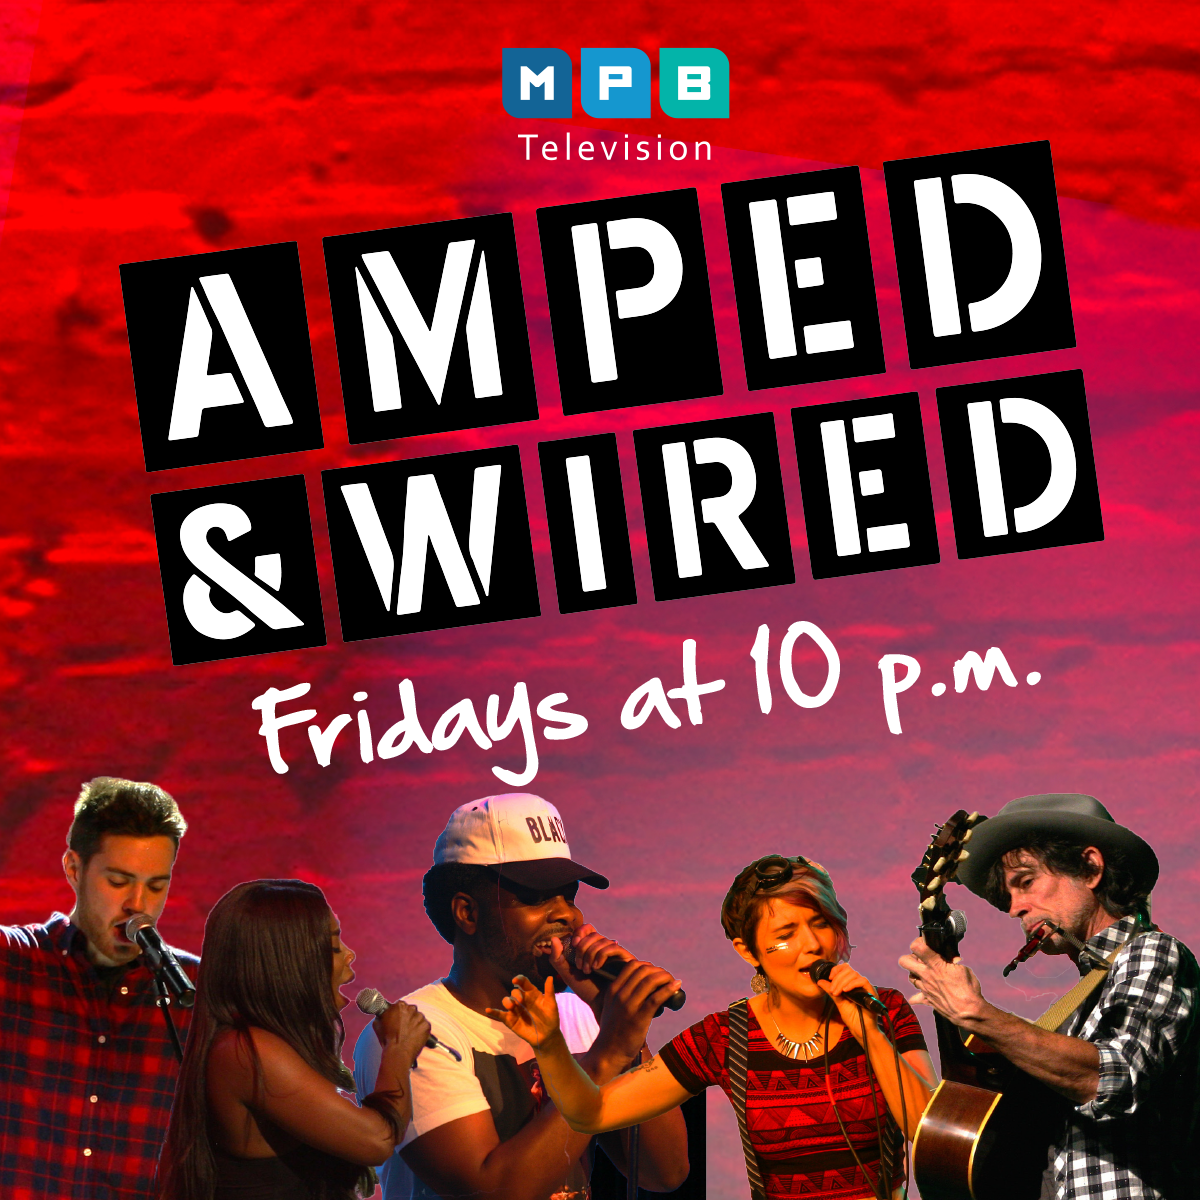 Watch Amped & Wwired, Fridays, at 10PM on MPB TV.